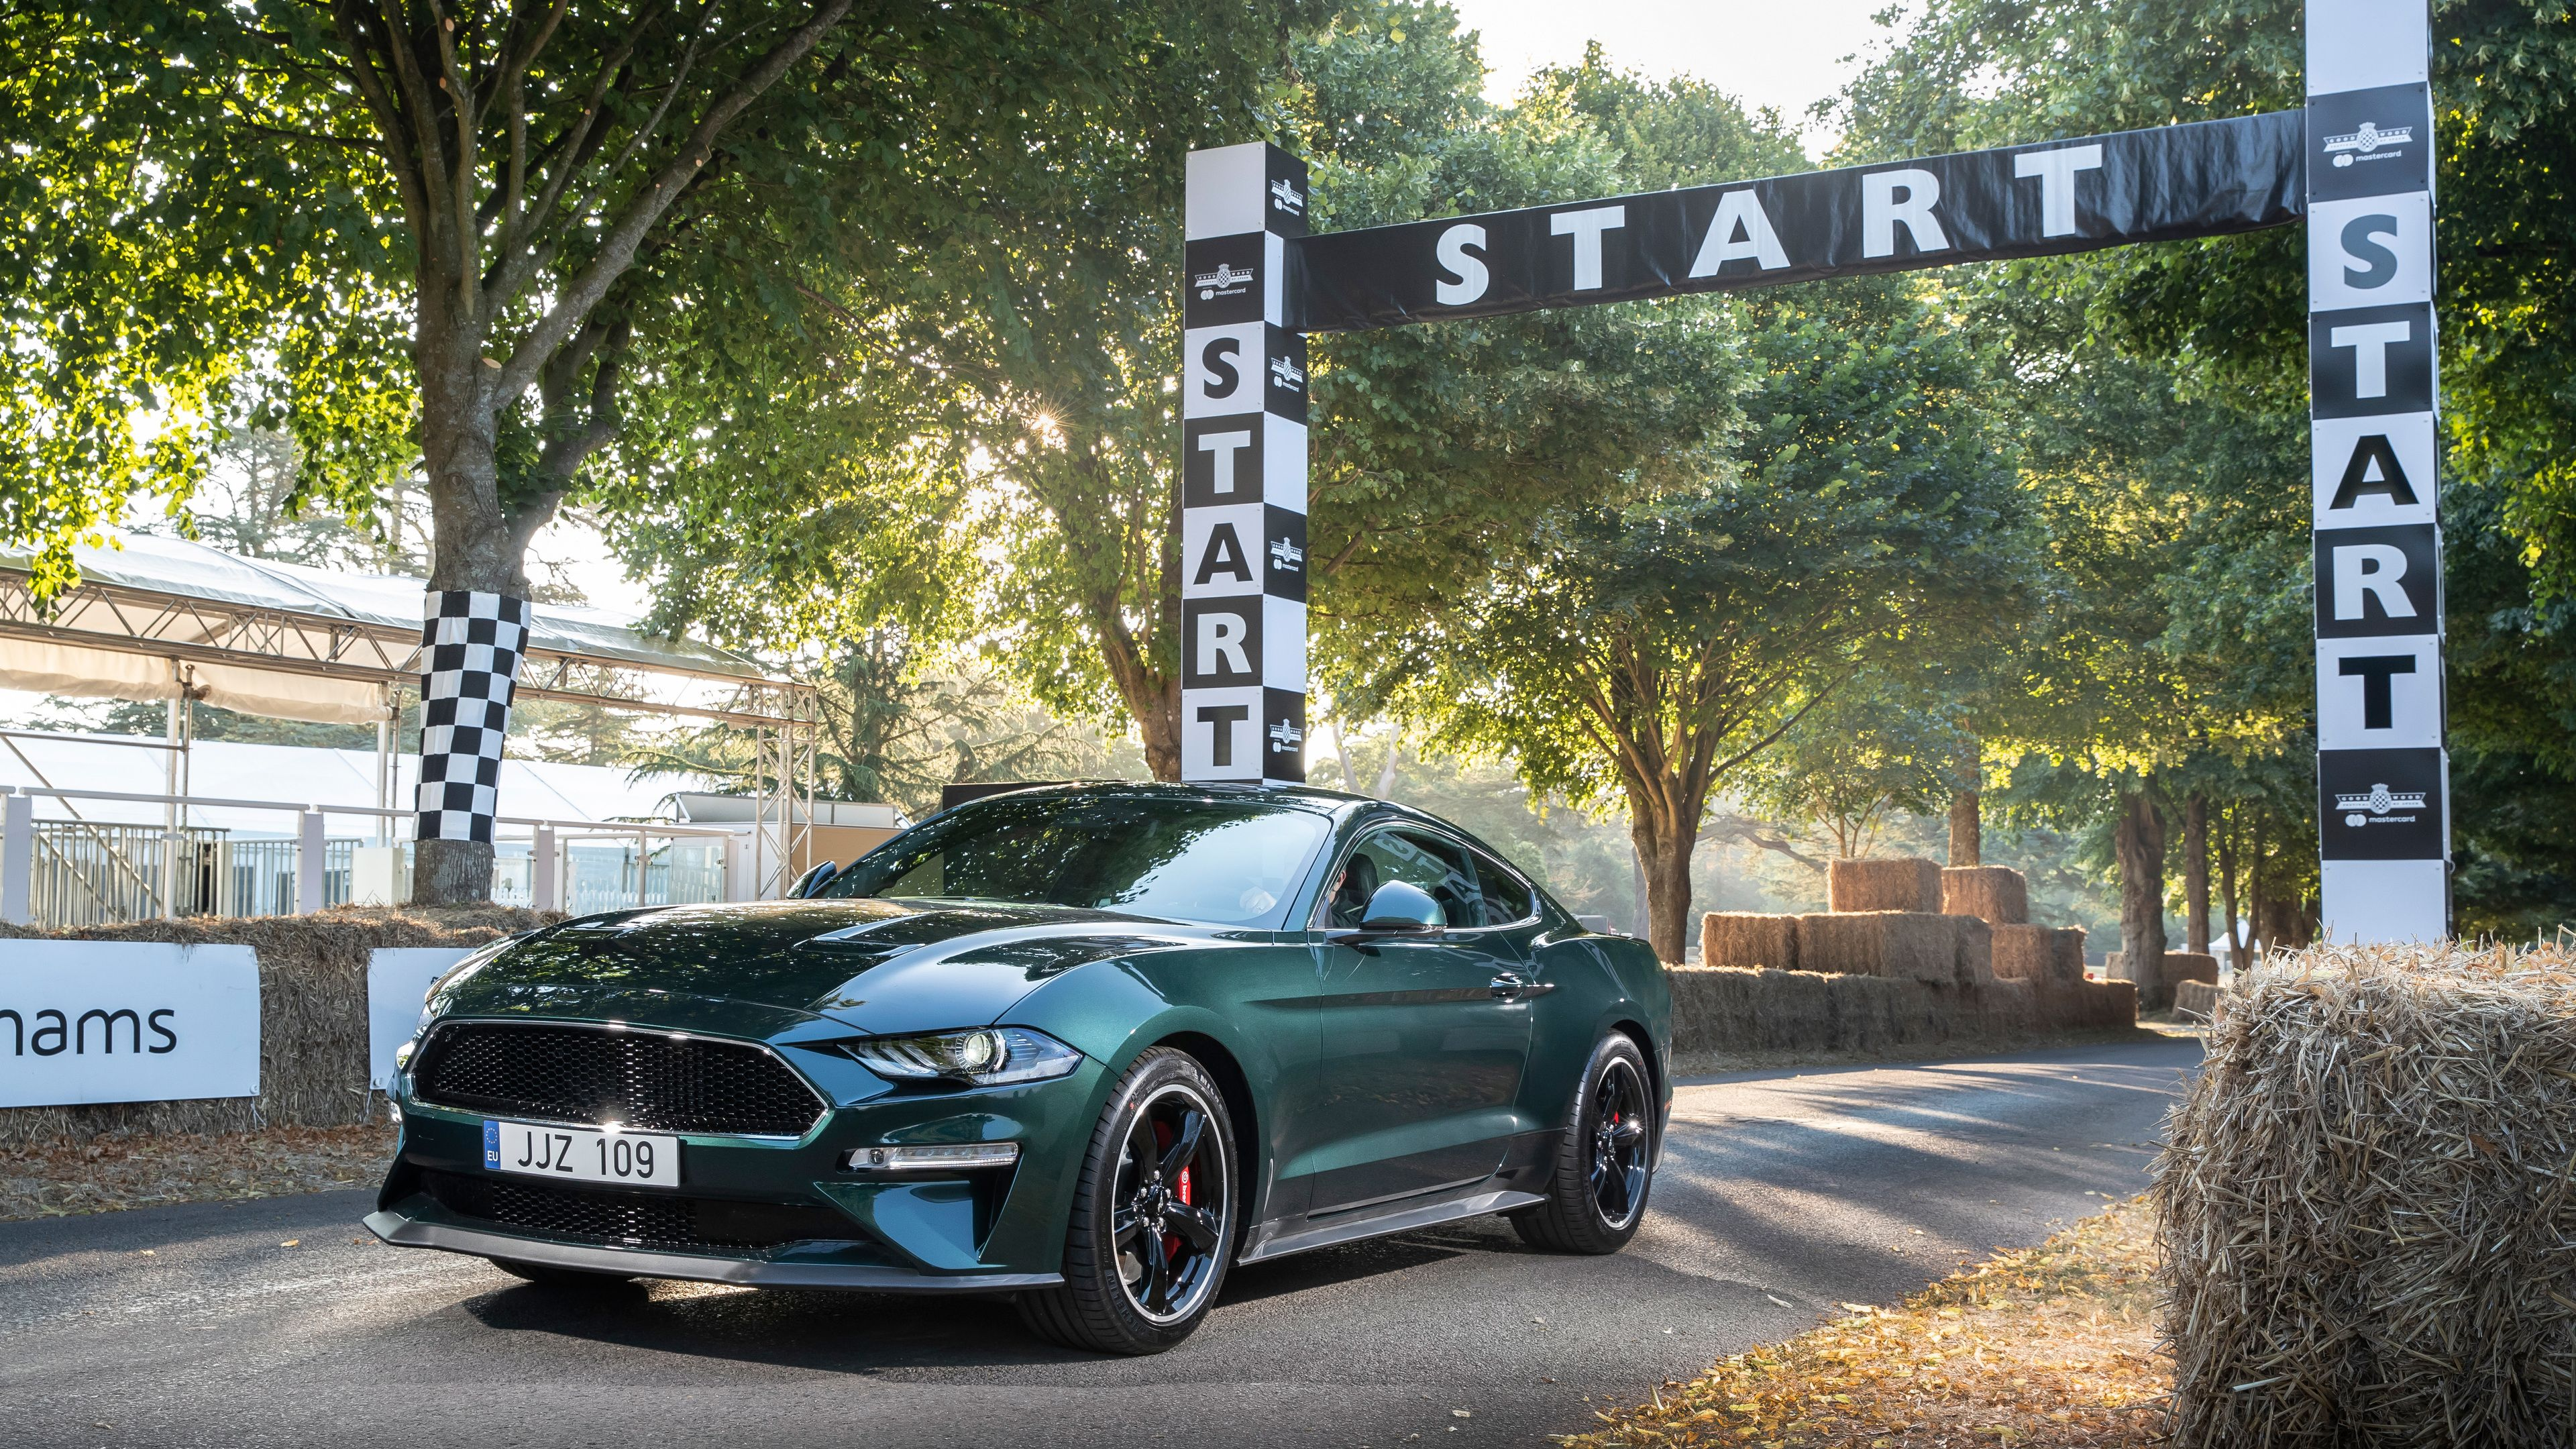 Ford Mustang Bullitt New Limited Edition 2019 mustang wallpapers, hd-wallpapers,…